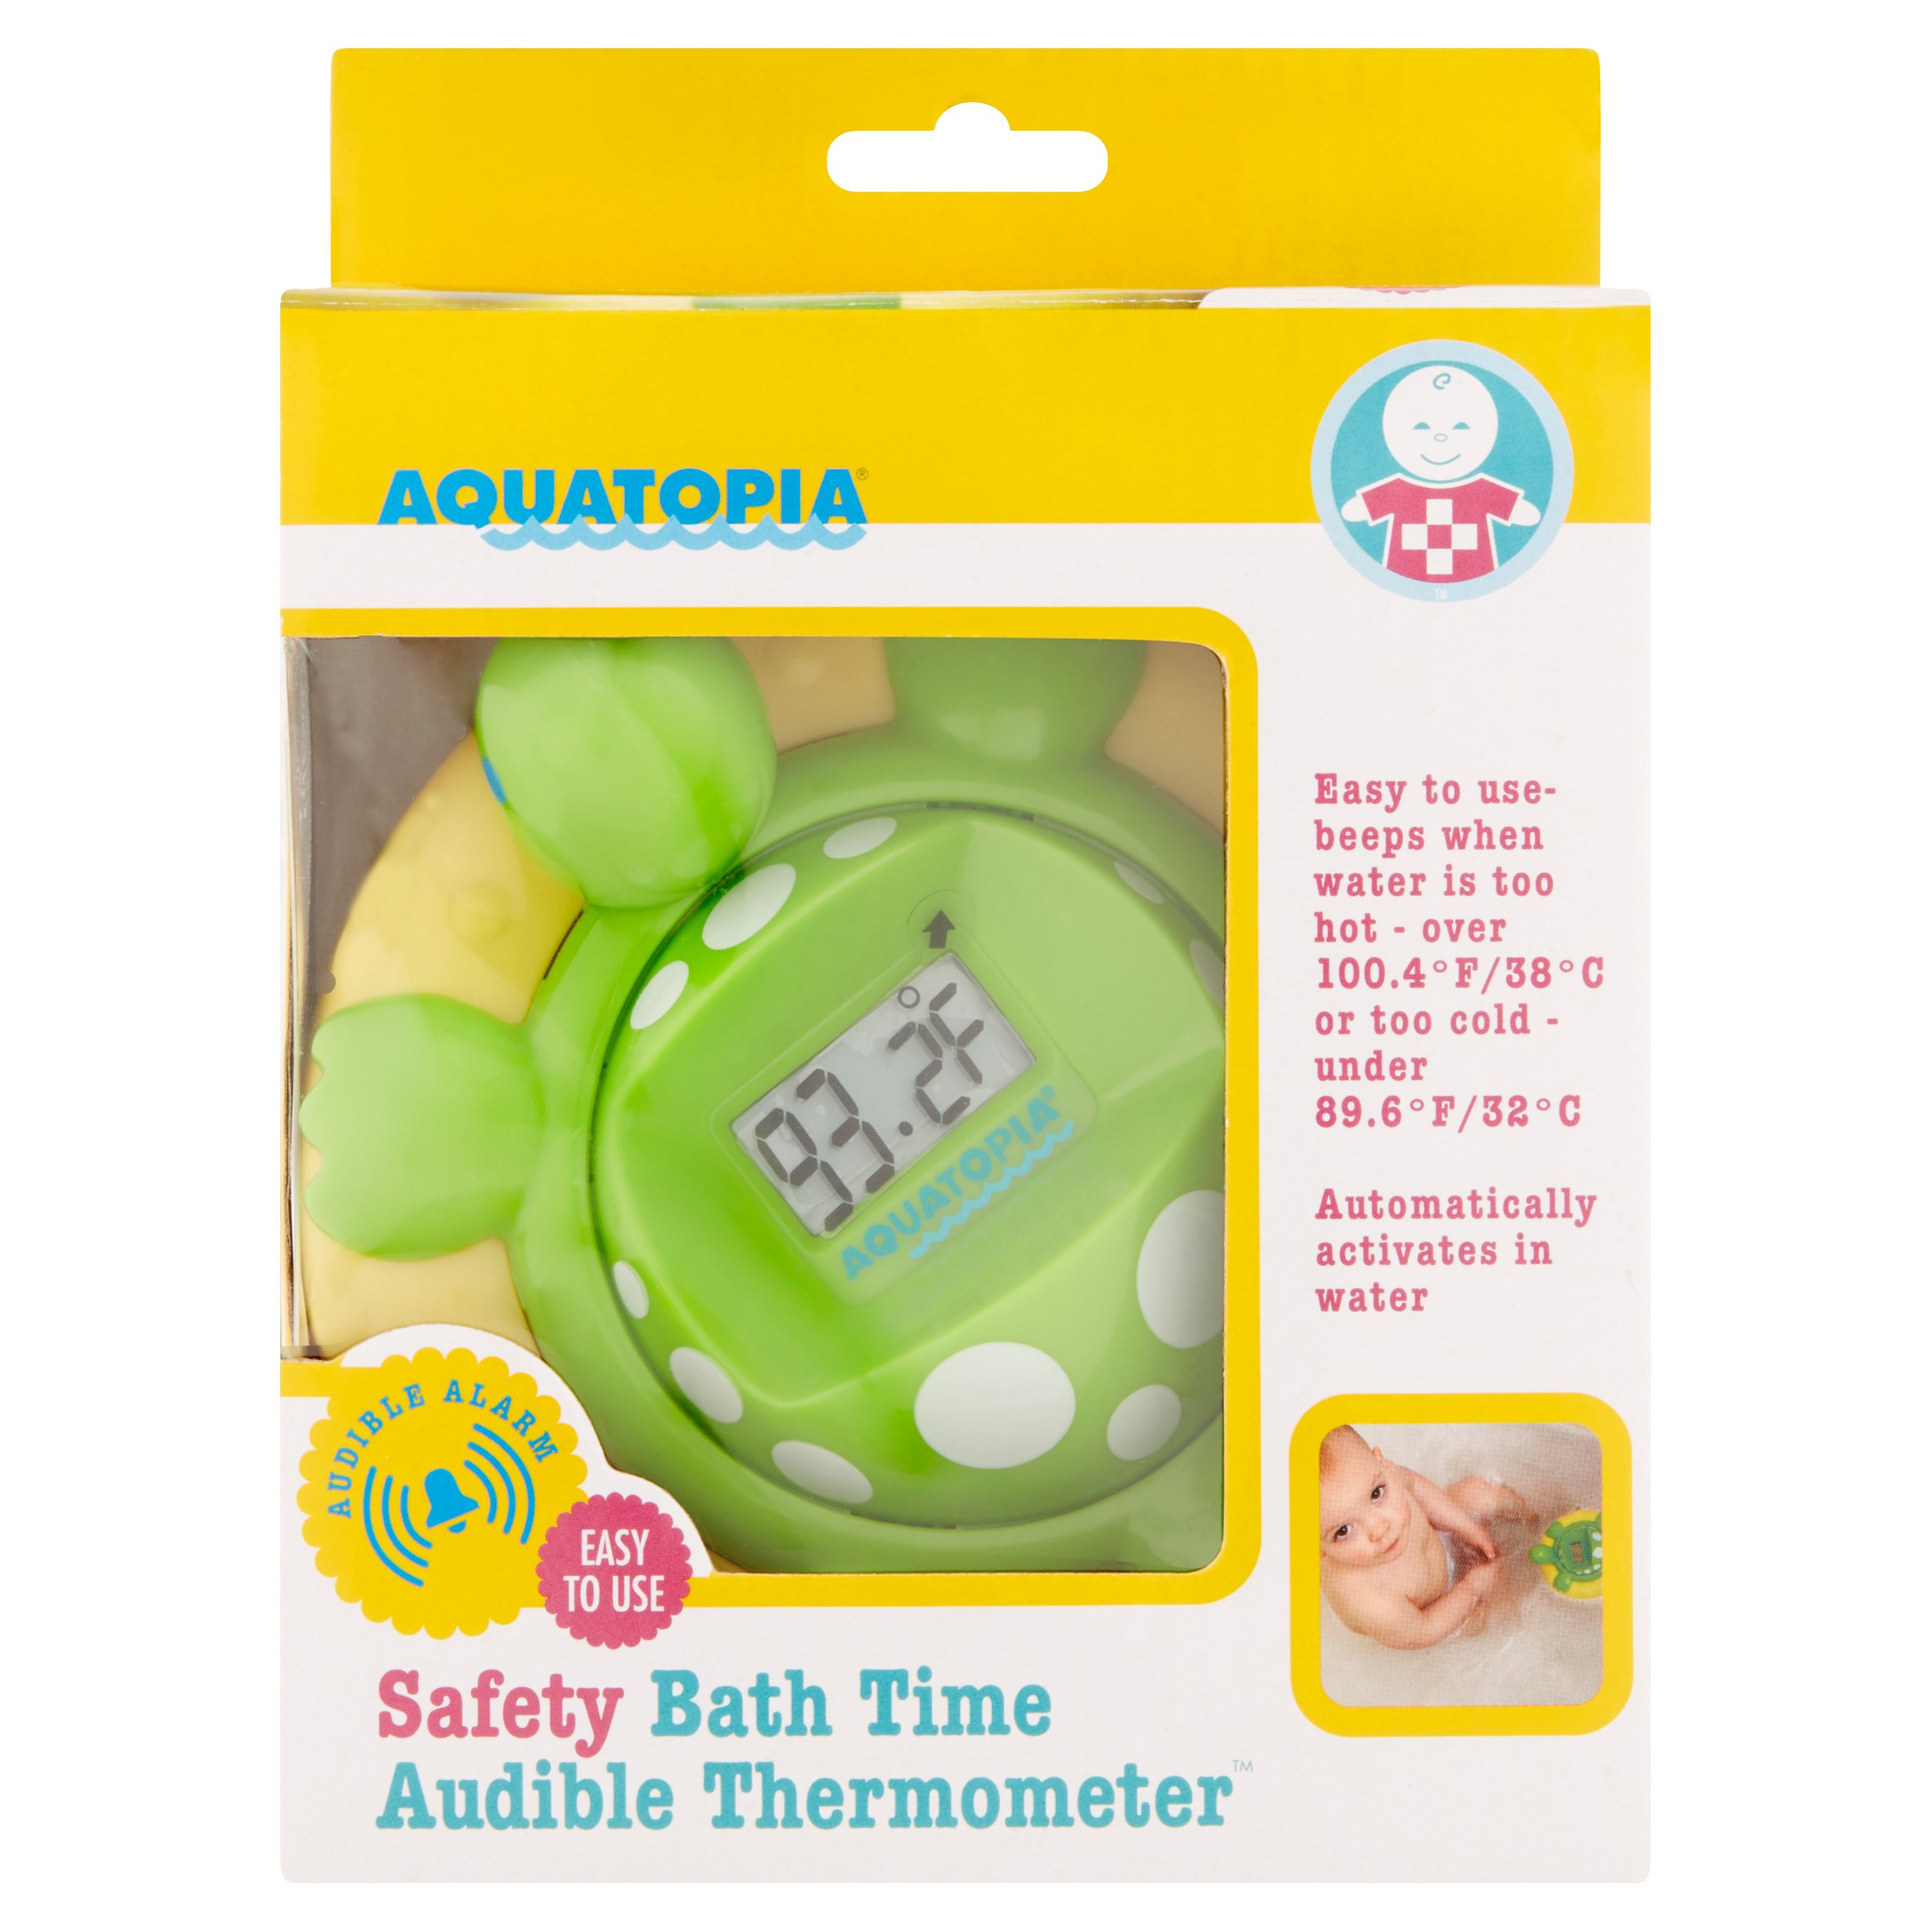 Aquatopia Safety Bath Time Audible Thermometer and Alarm - Walmart.com